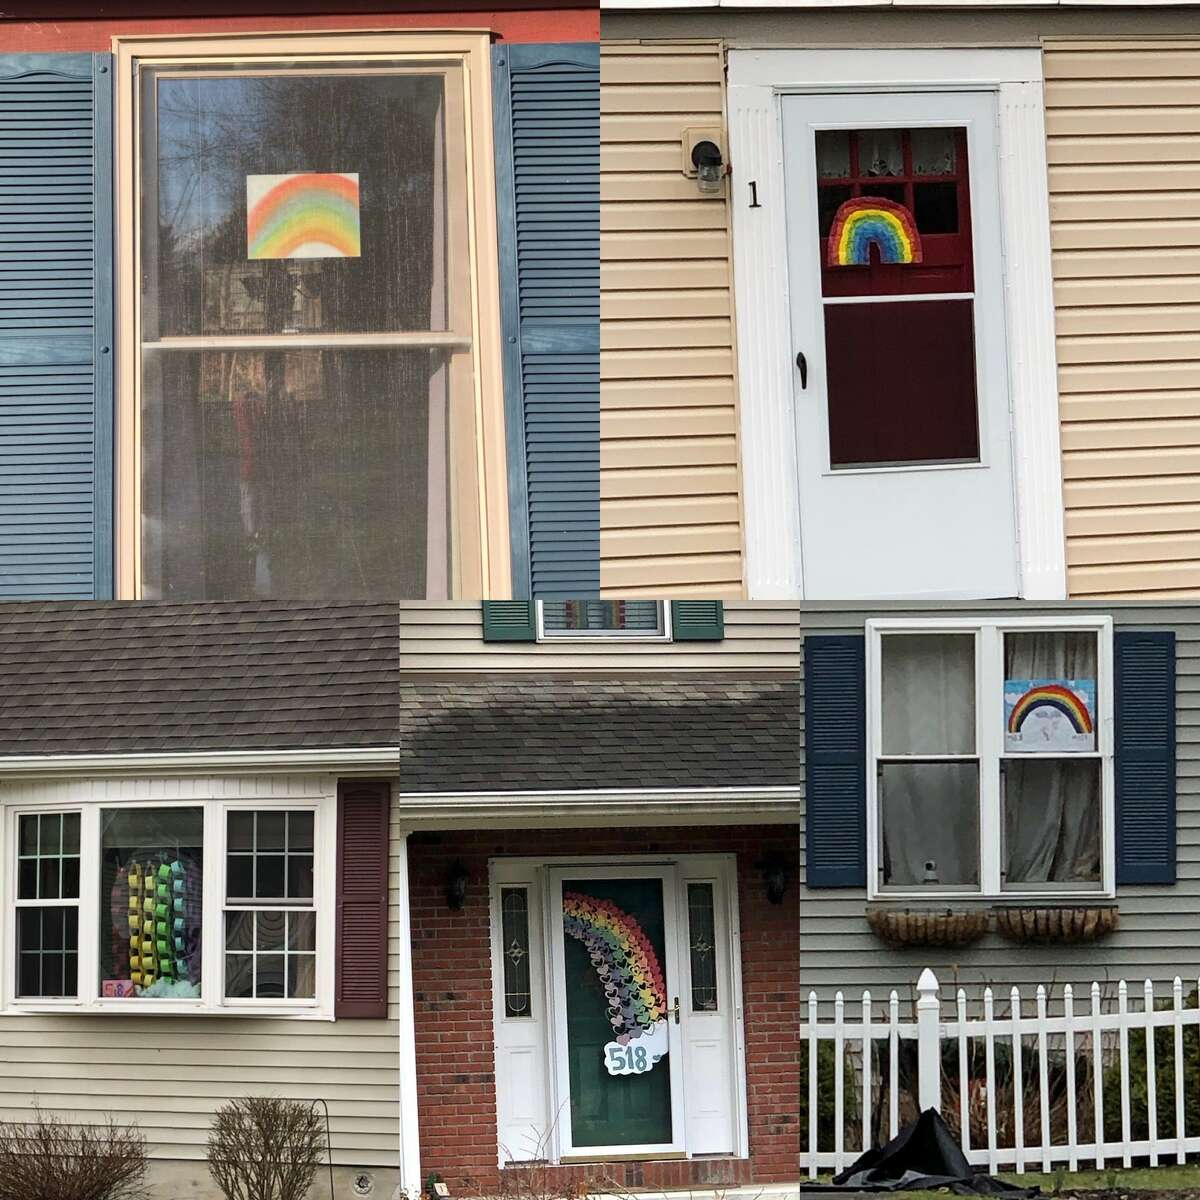 Dan Lundquist shared this collage of rainbows in windows in Albany's Woodscape neighborhood on March 30, 2020.